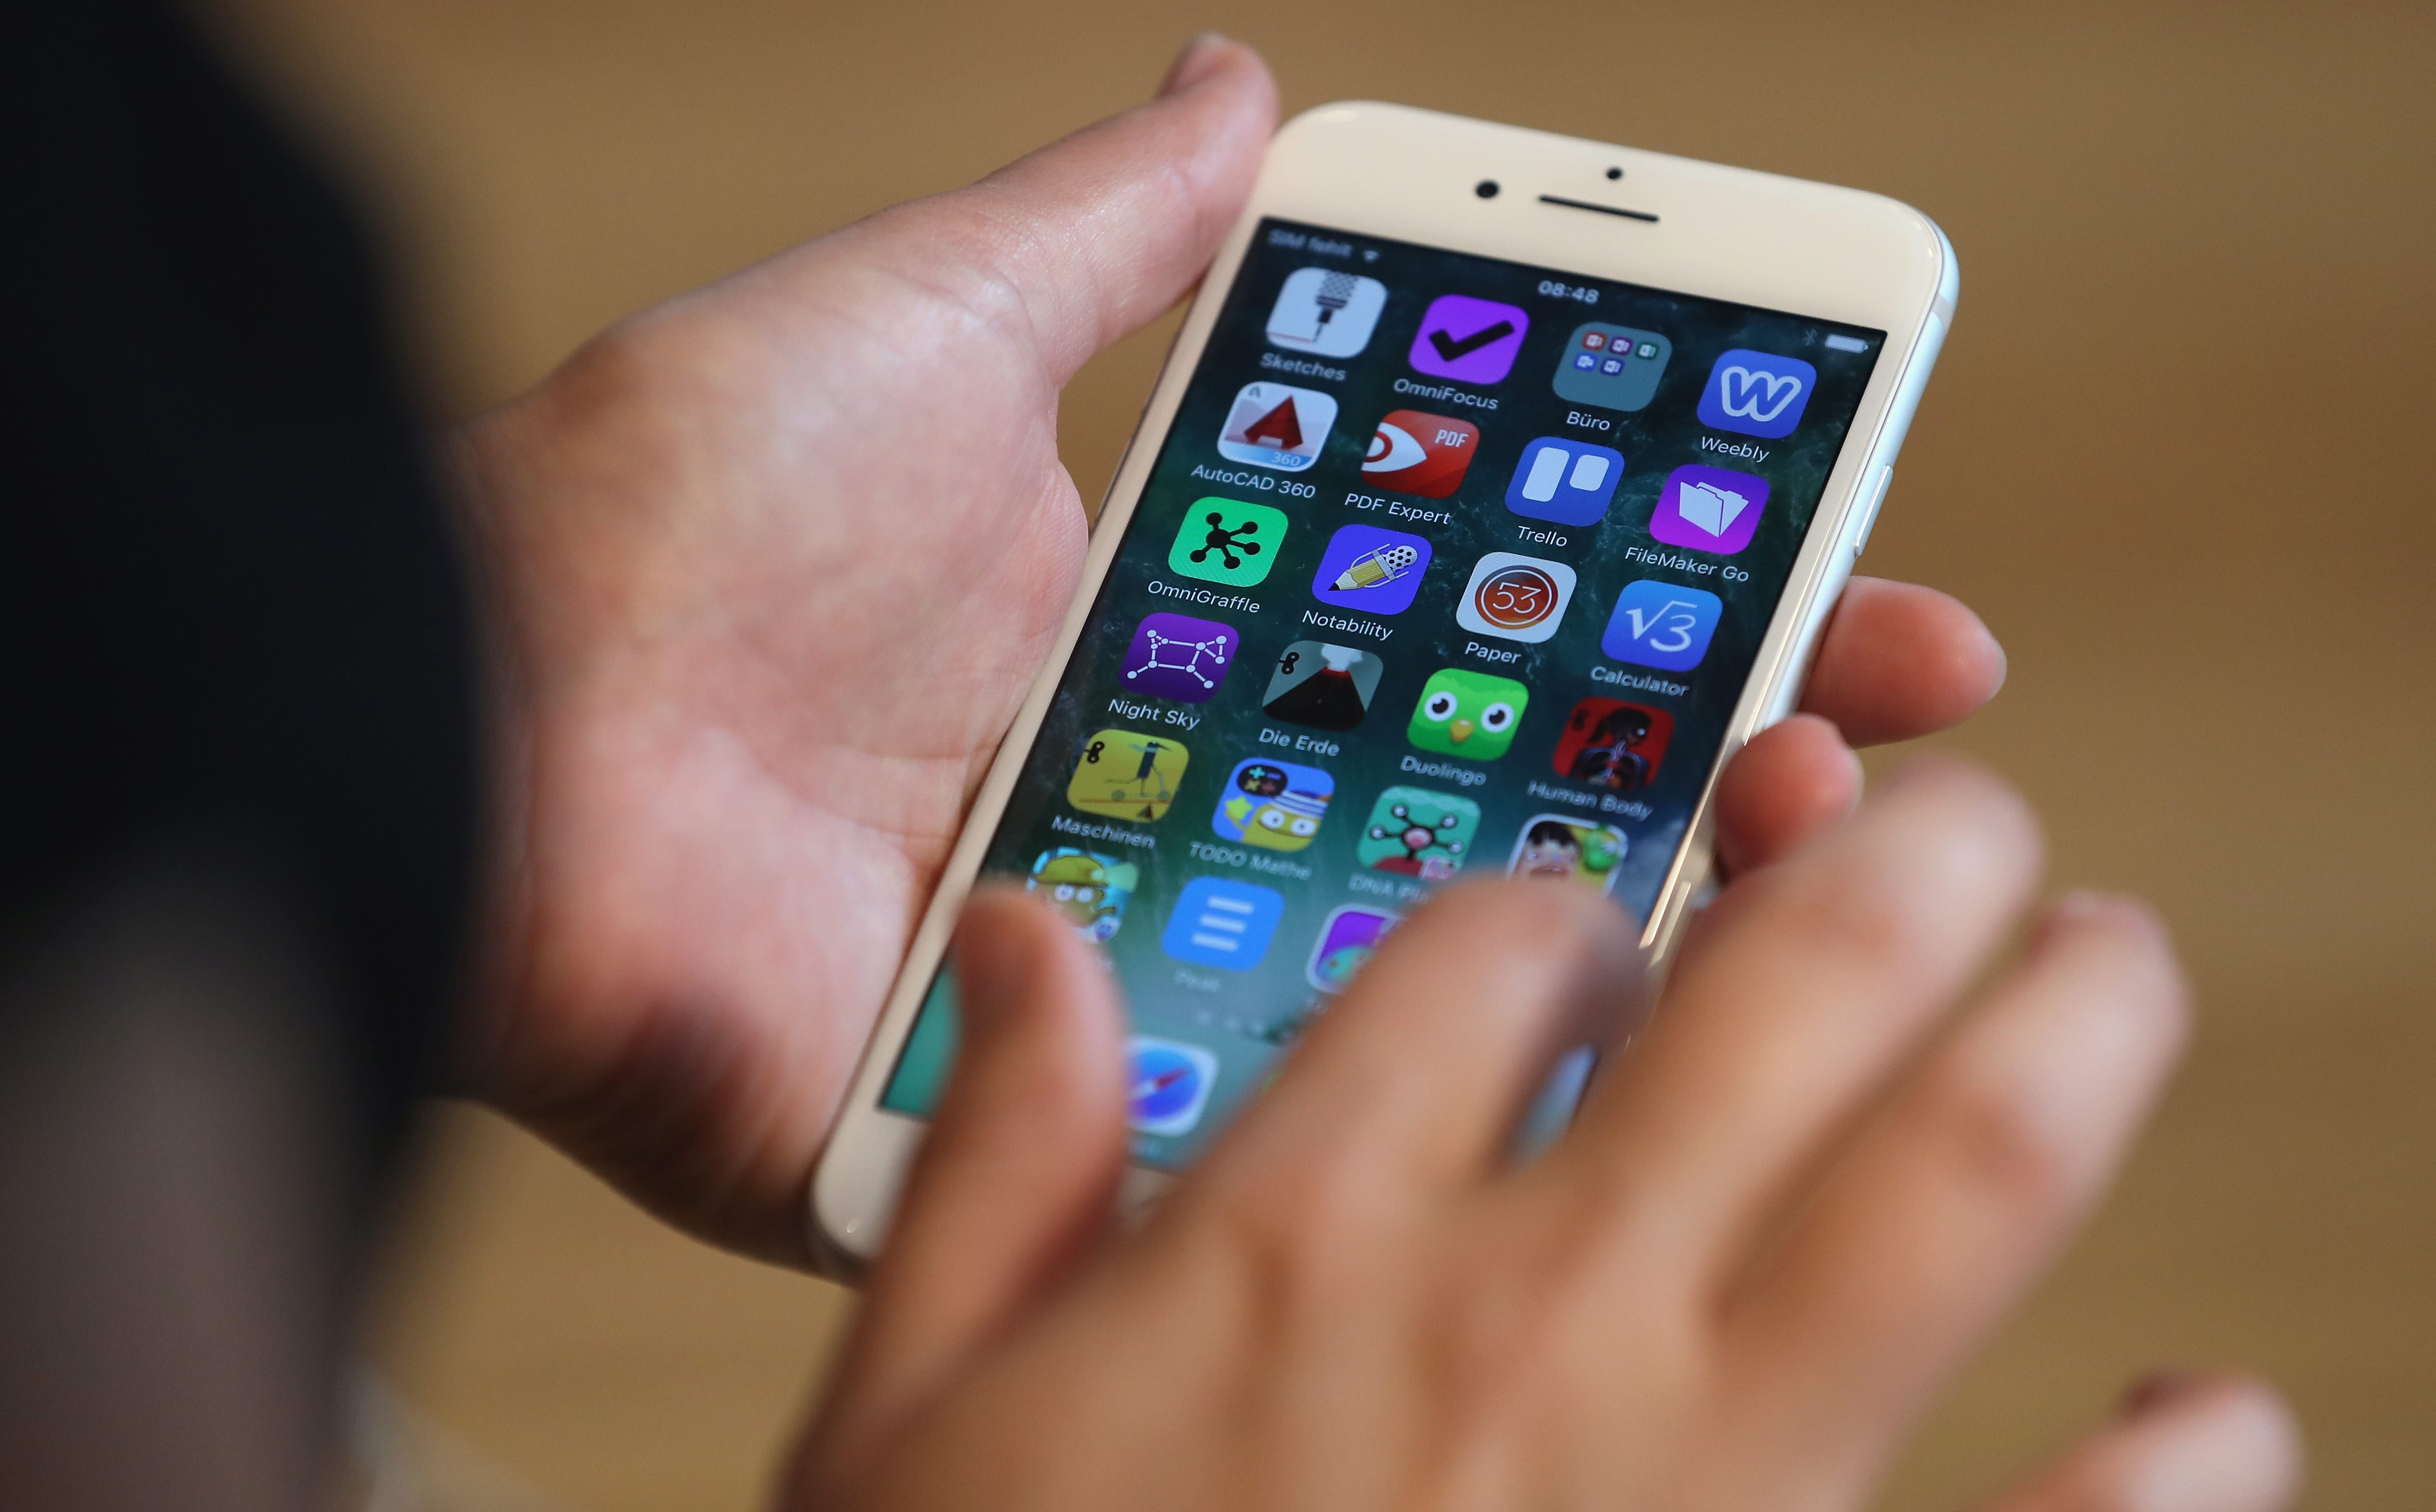 A visitor tries out an Apple iPhone 7 at an Apple store on Sept. 16, 2016, in Berlin, Germany.